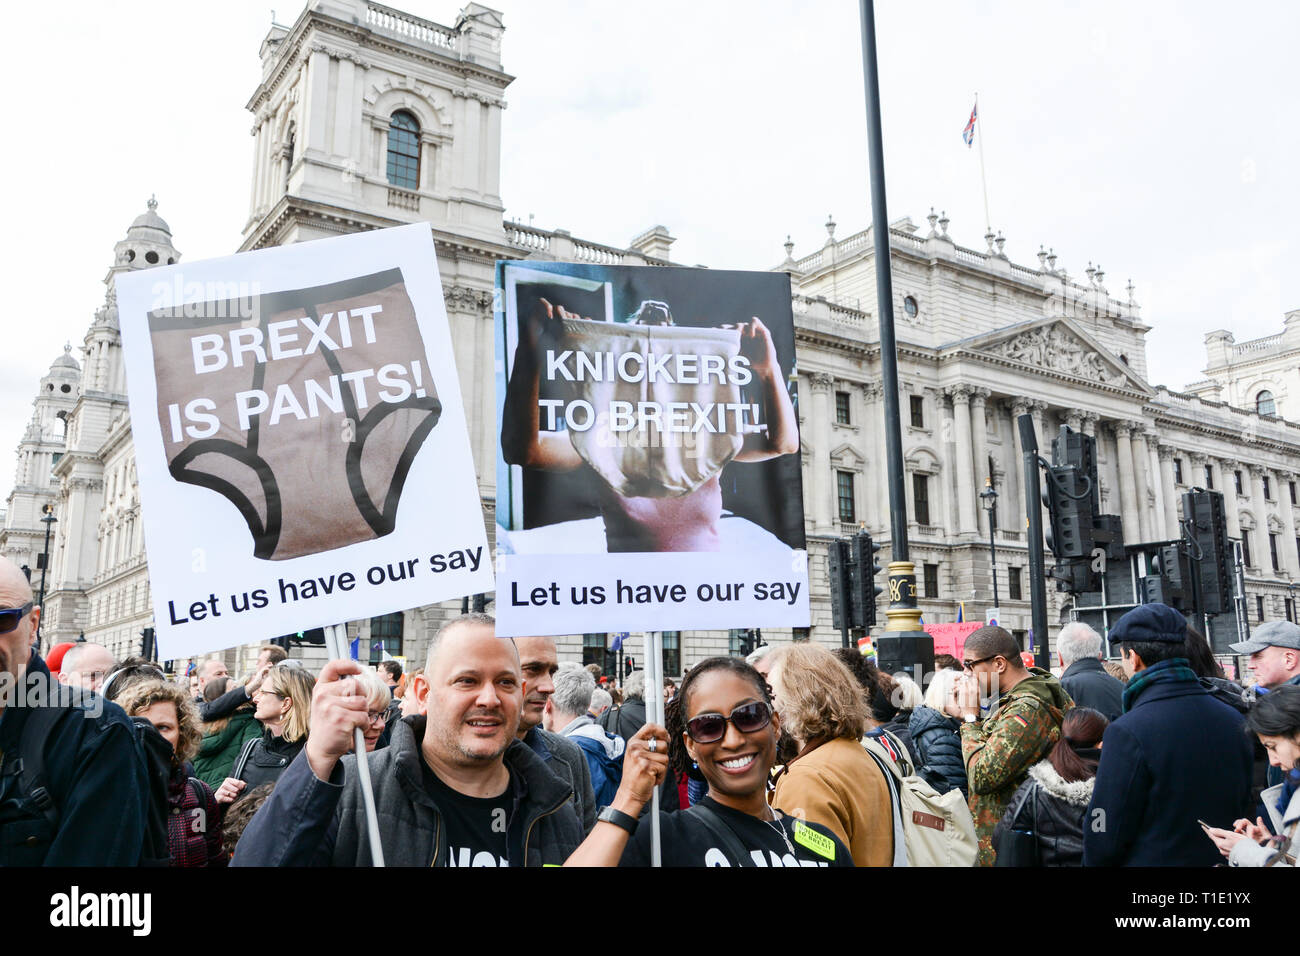 London, England, UK. 23 March 2019.  Brexit is Pants placards at the People's Vote anti Brexit protest march - Stock Image